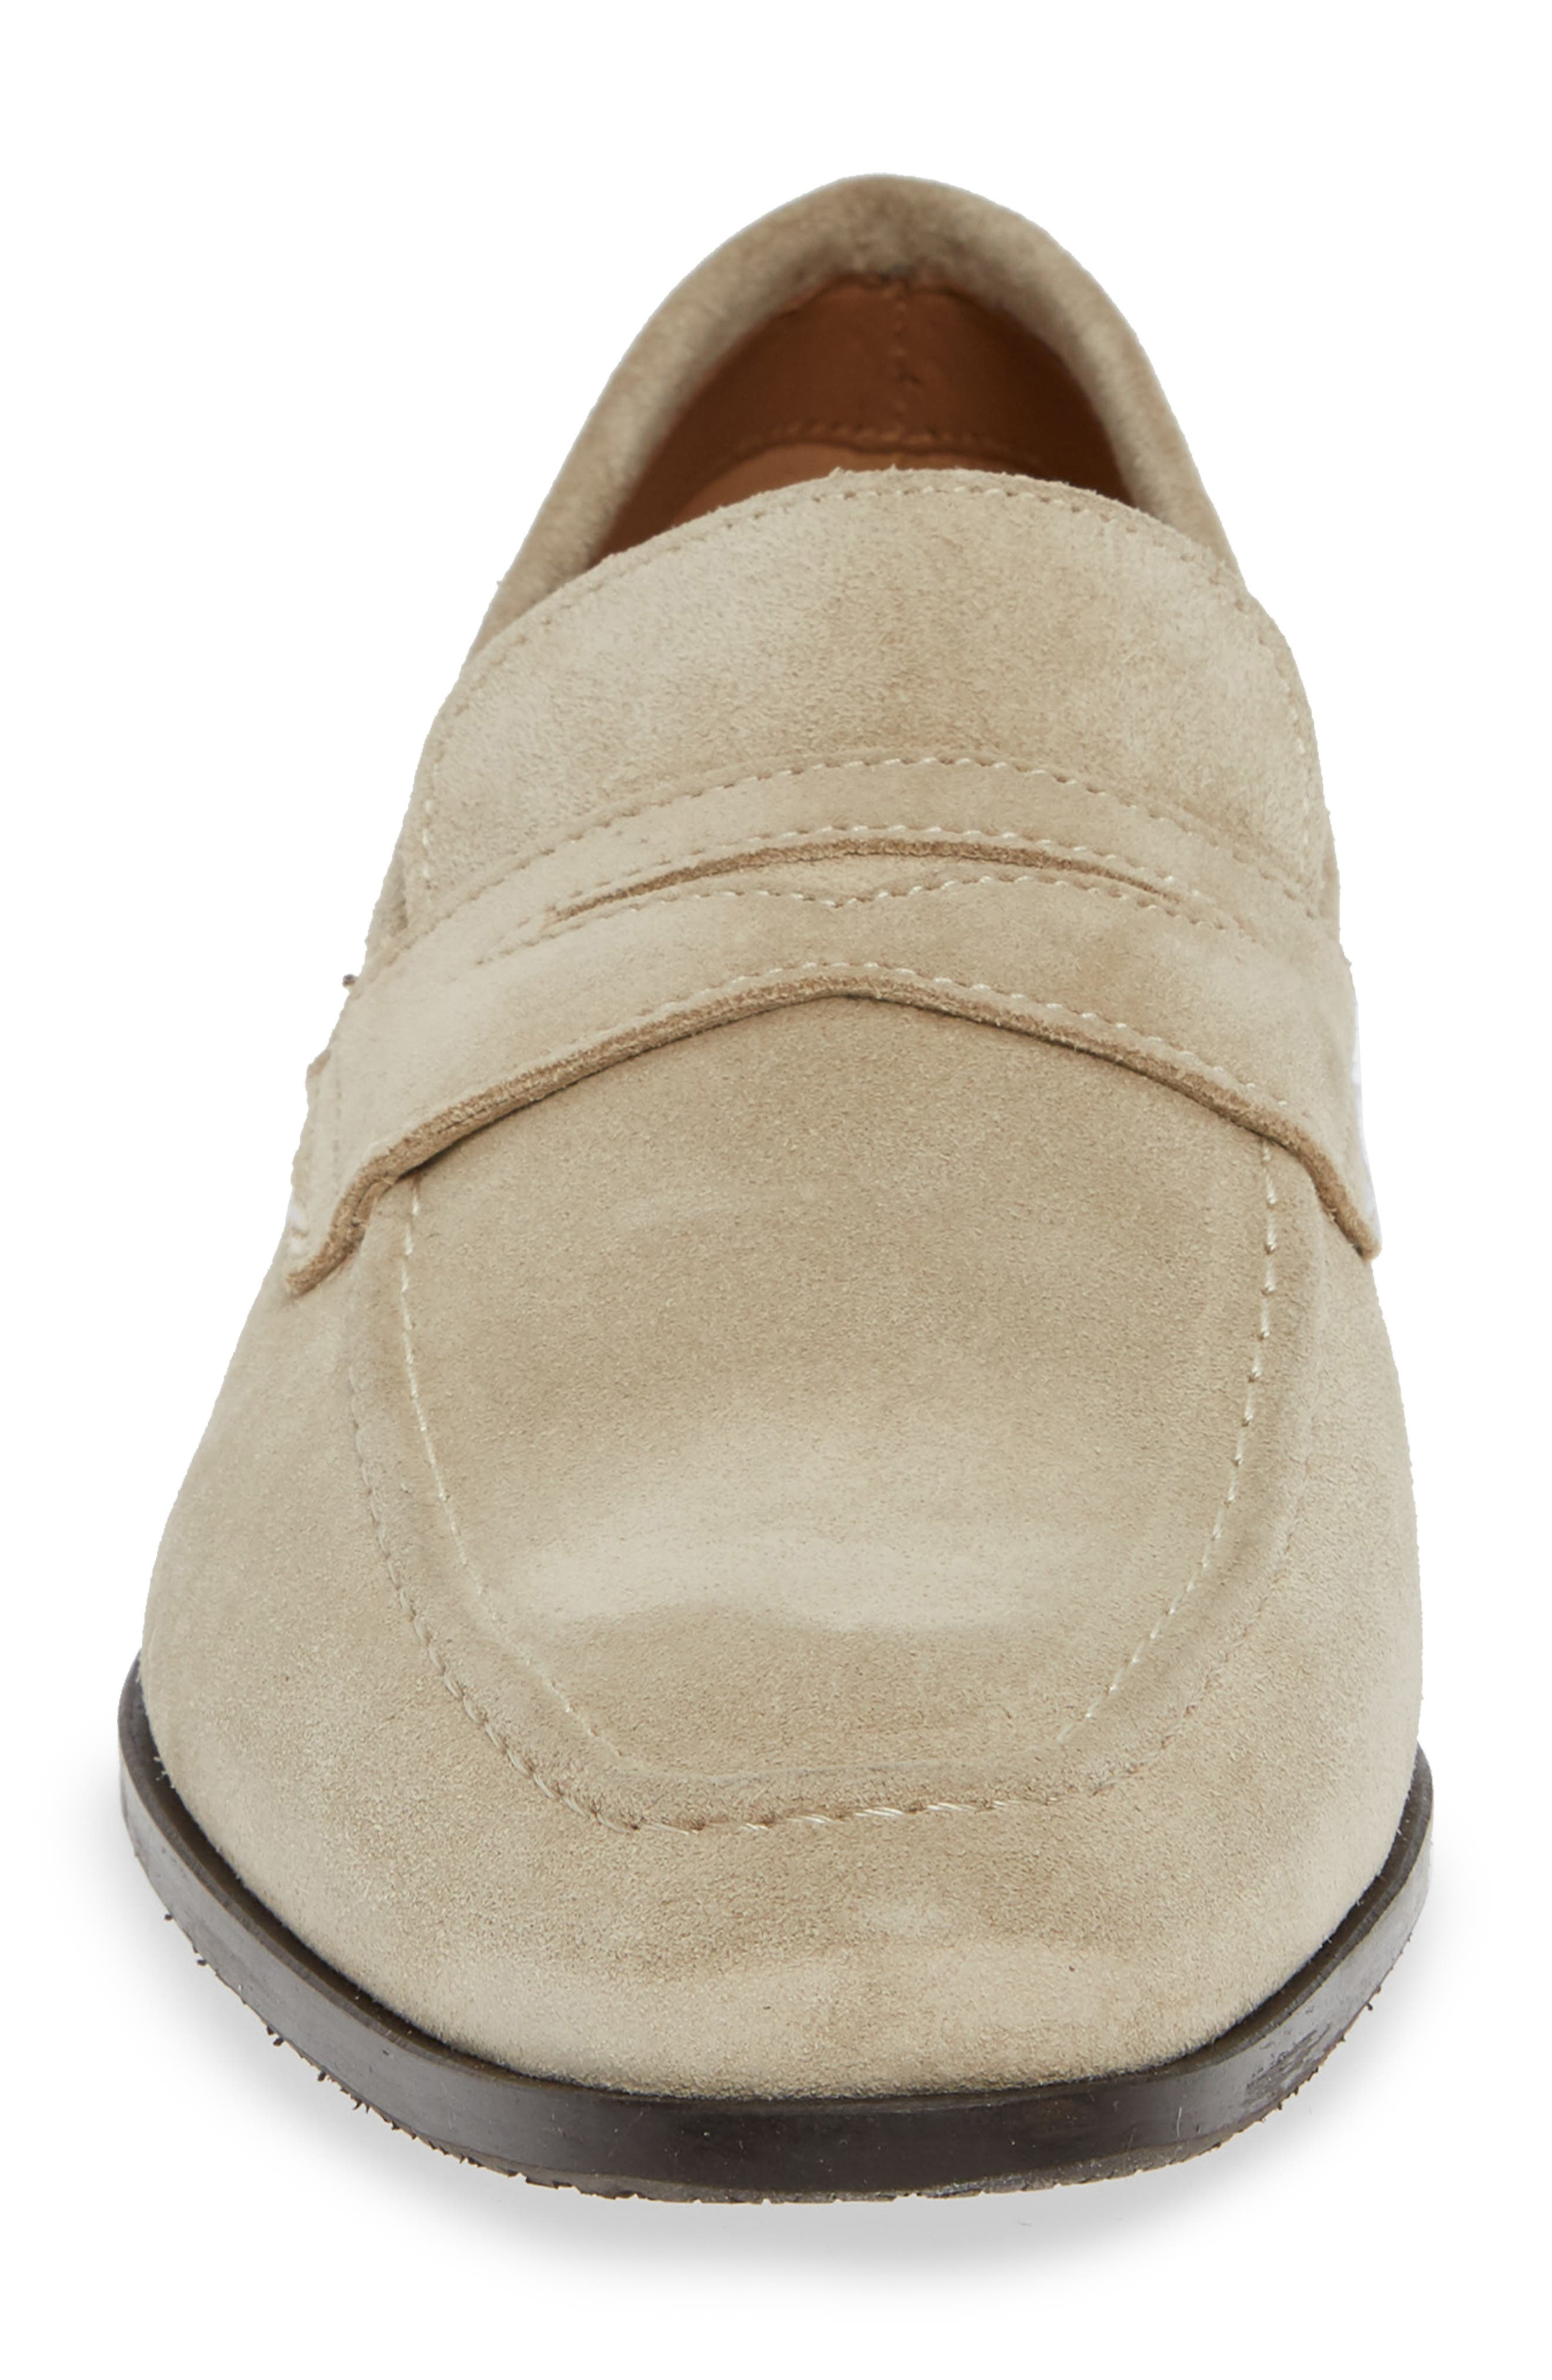 Nicasio Apron Toe Penny Loafer,                             Alternate thumbnail 4, color,                             SAND SUEDE